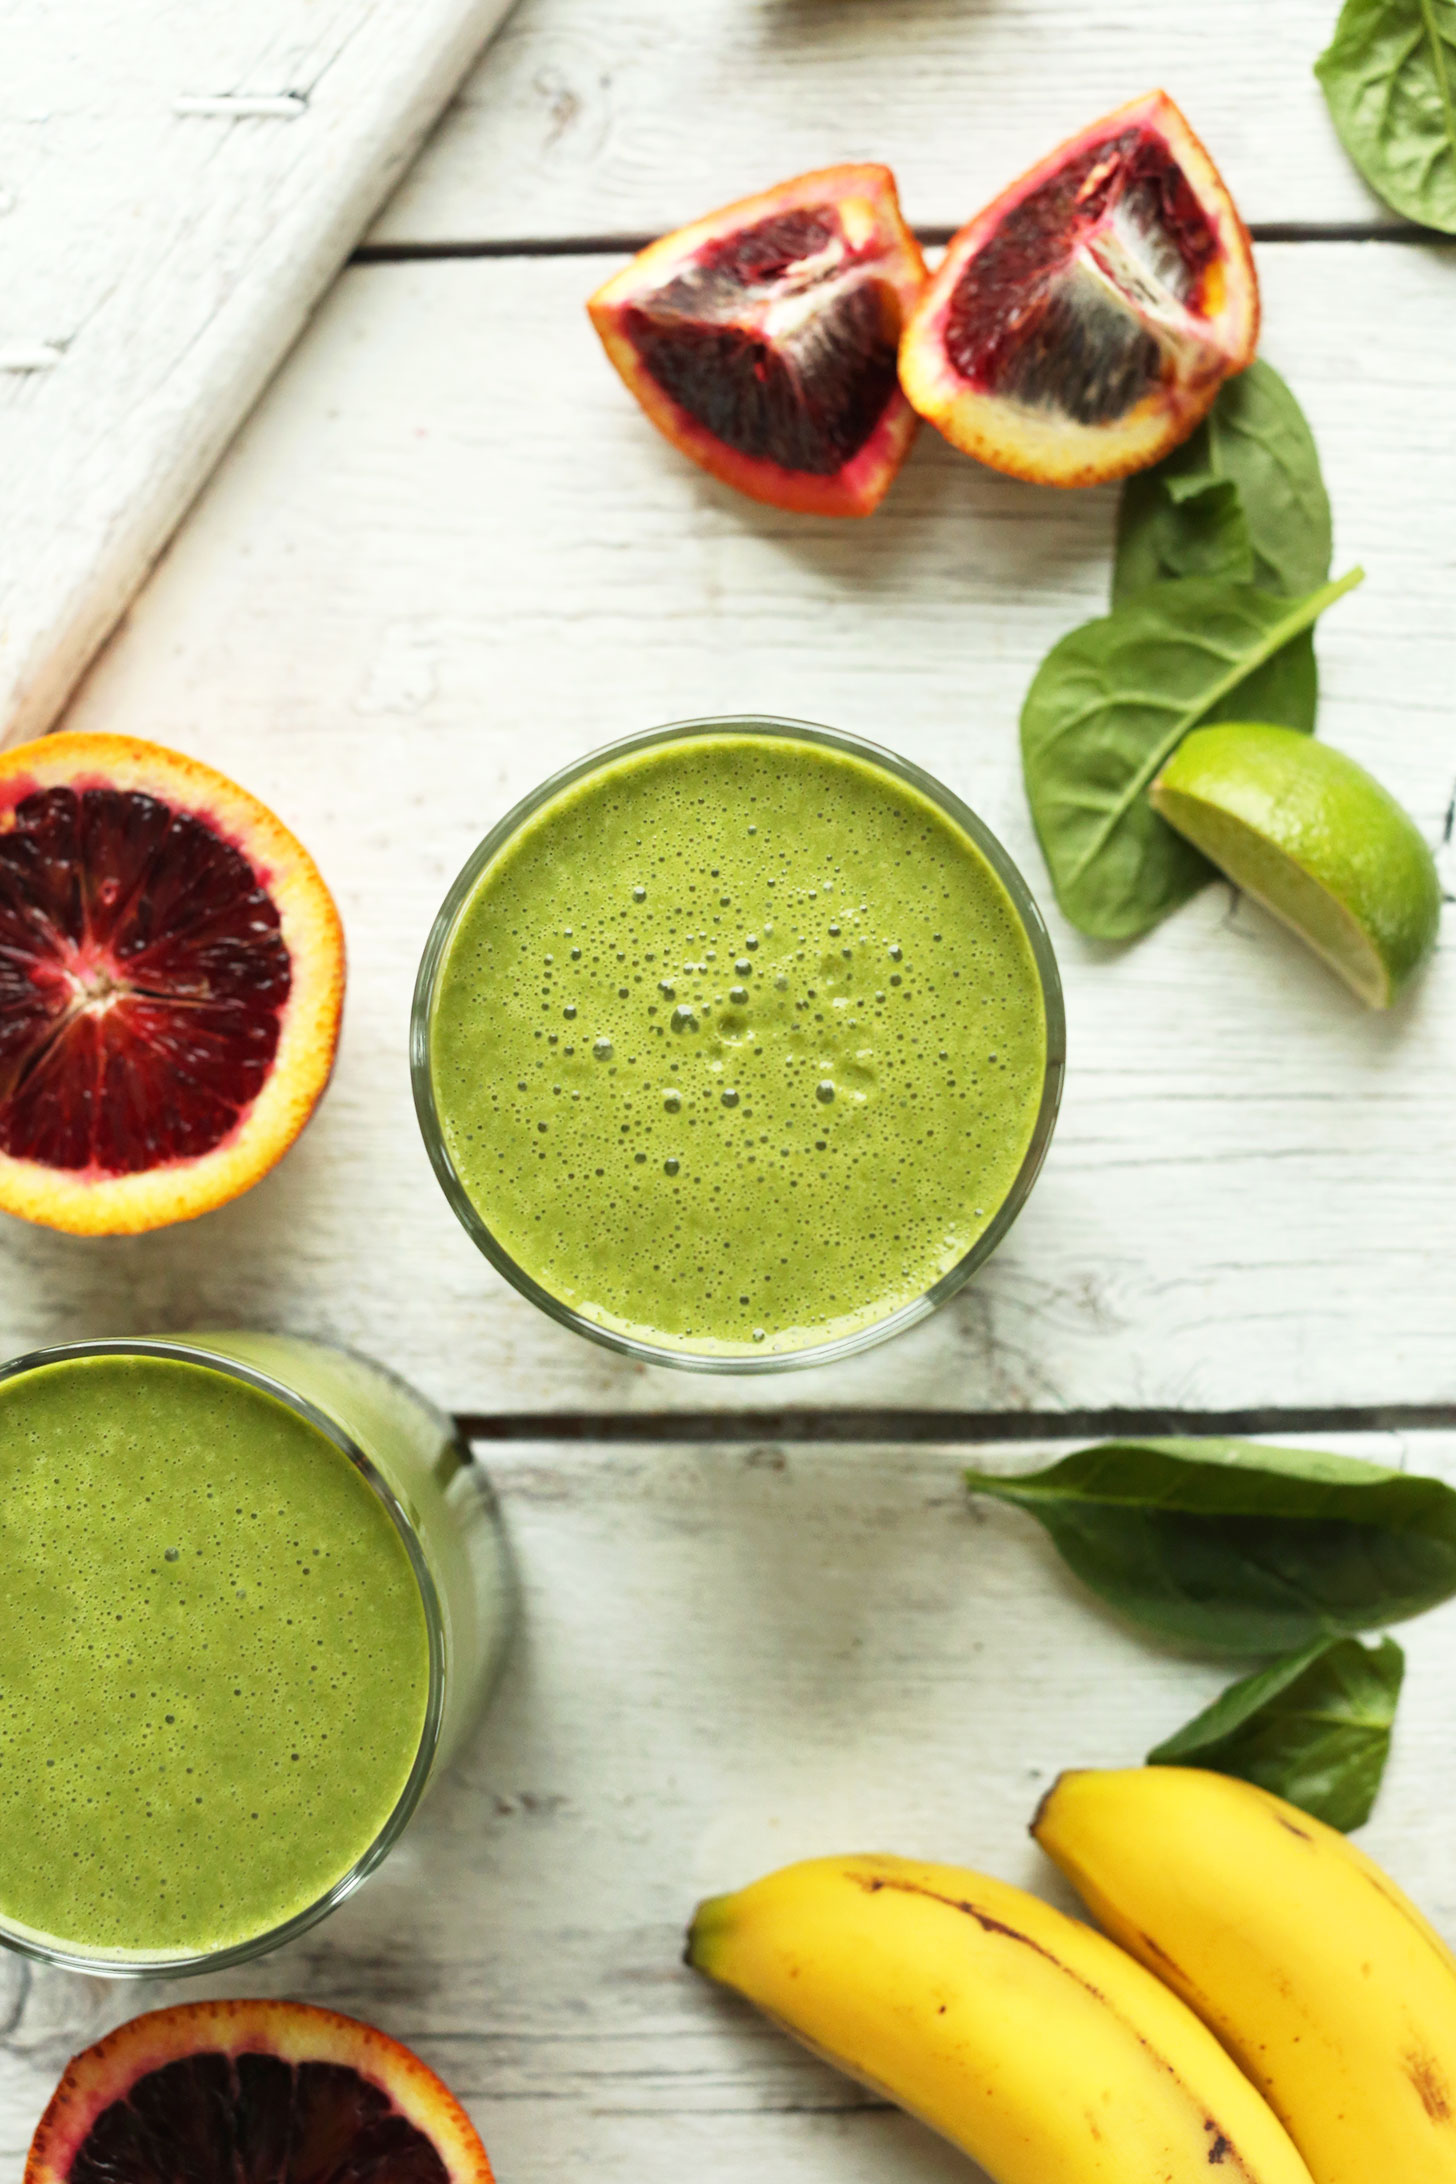 Two glasses of our Blood Orange Green Smoothie recipe beside fresh spinach, lime, blood oranges, and bananas